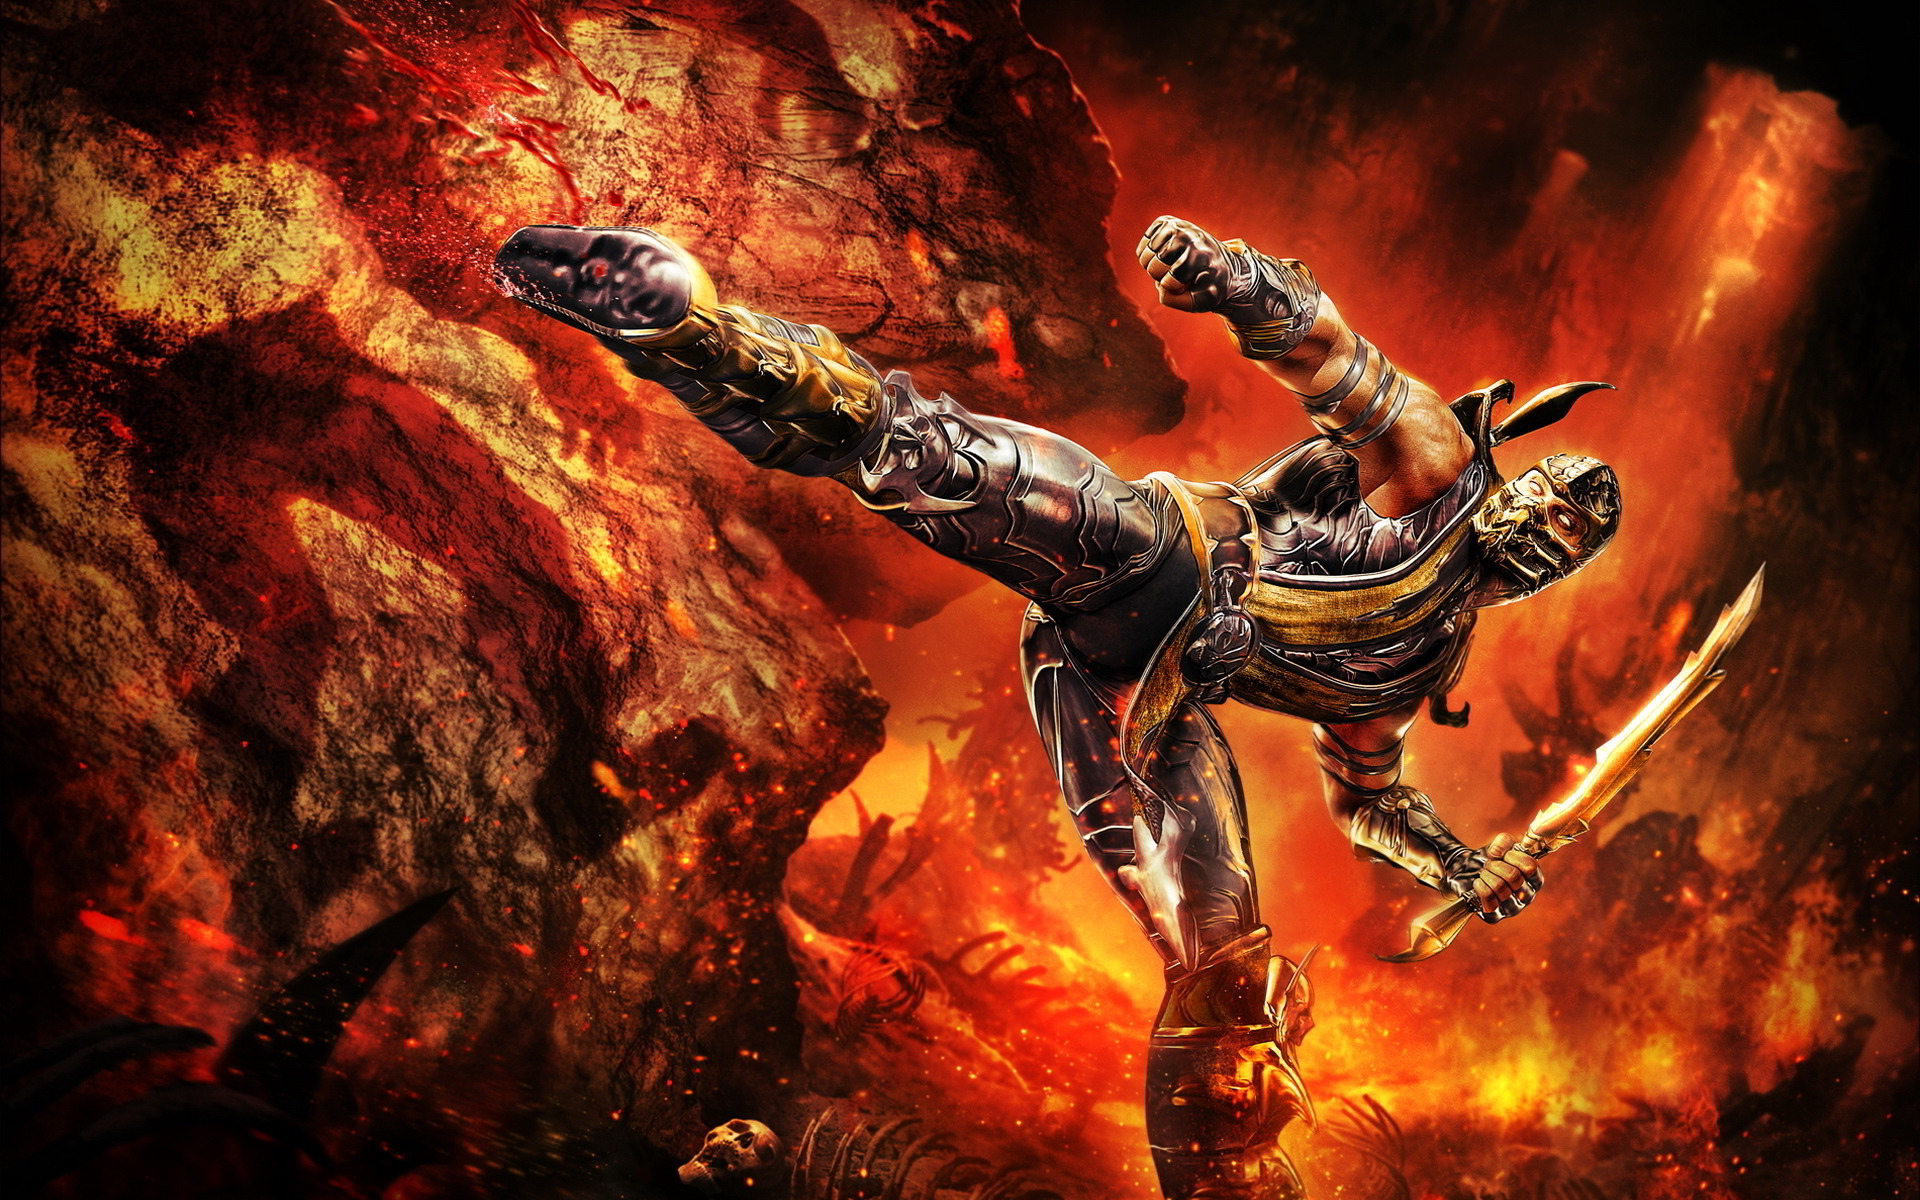 Free Scorpion Mortal Kombat Wallpaper